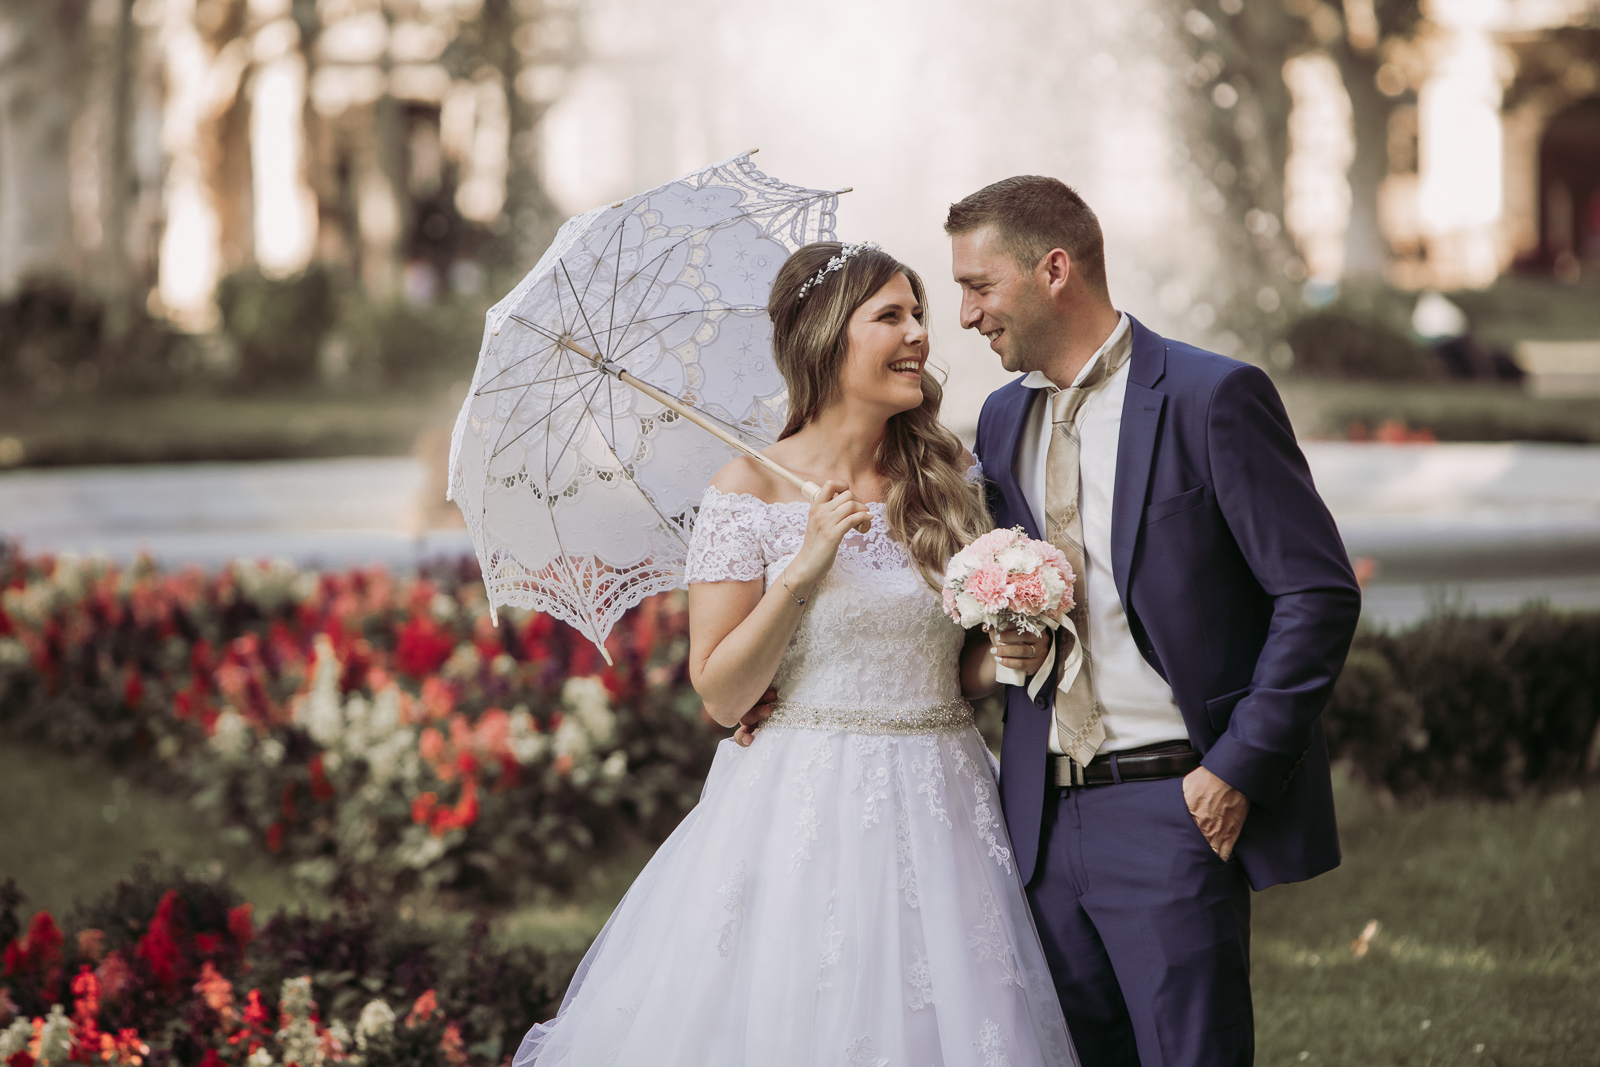 The newlyweds laugh and watch as she holds her umbrella